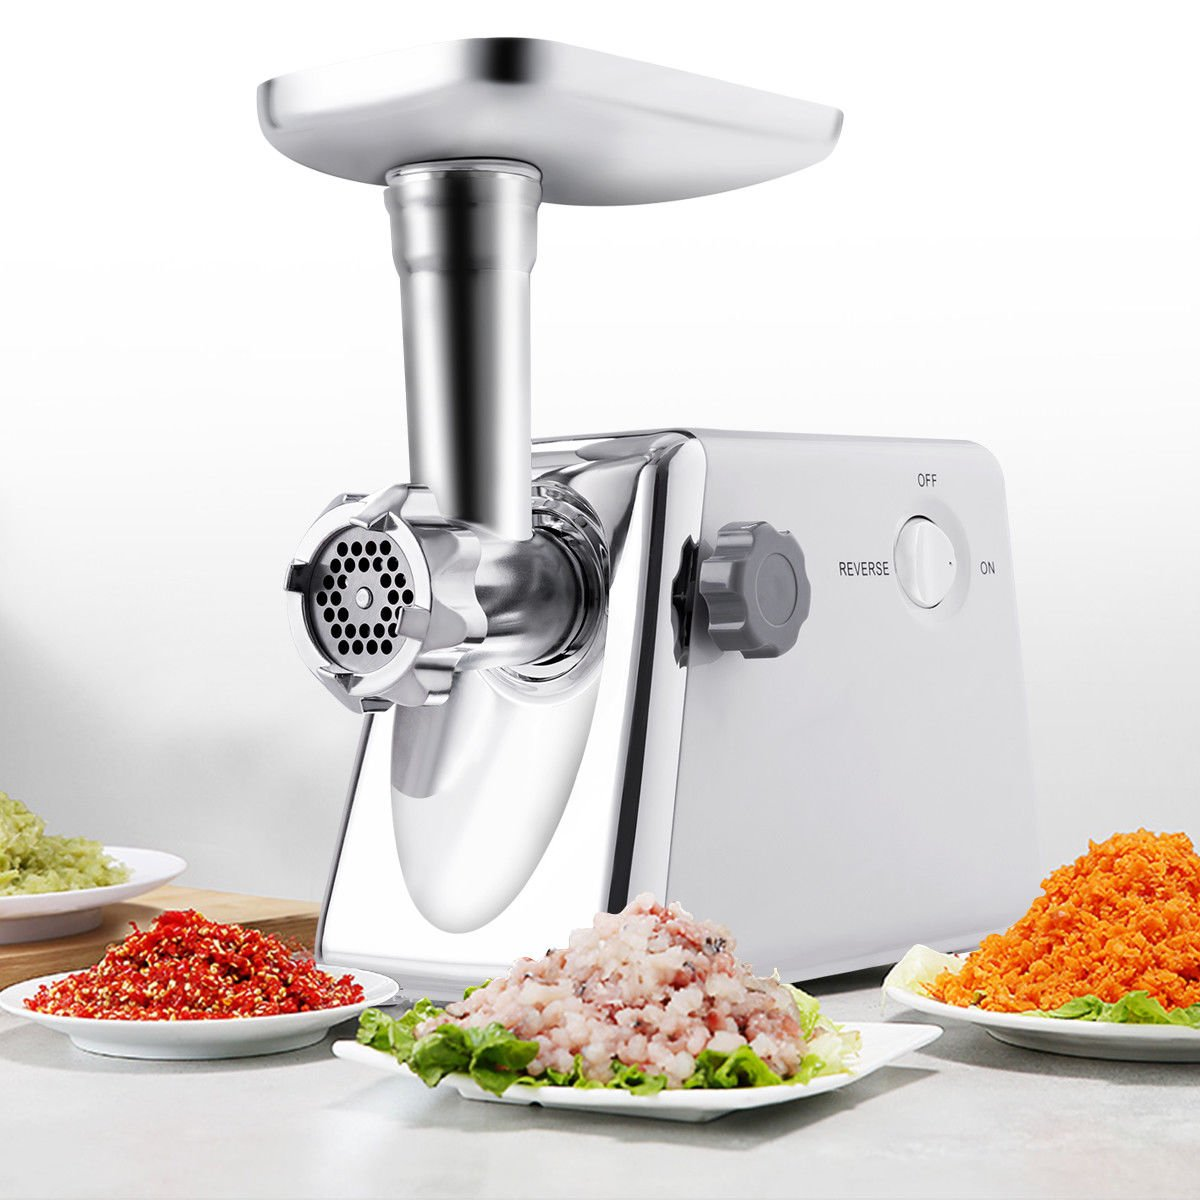 Safstar 1300 Watt Electric Meat Grinder Professional Commercial Home Food Mincer Meat Grind Steel with 3 Grinding Plates